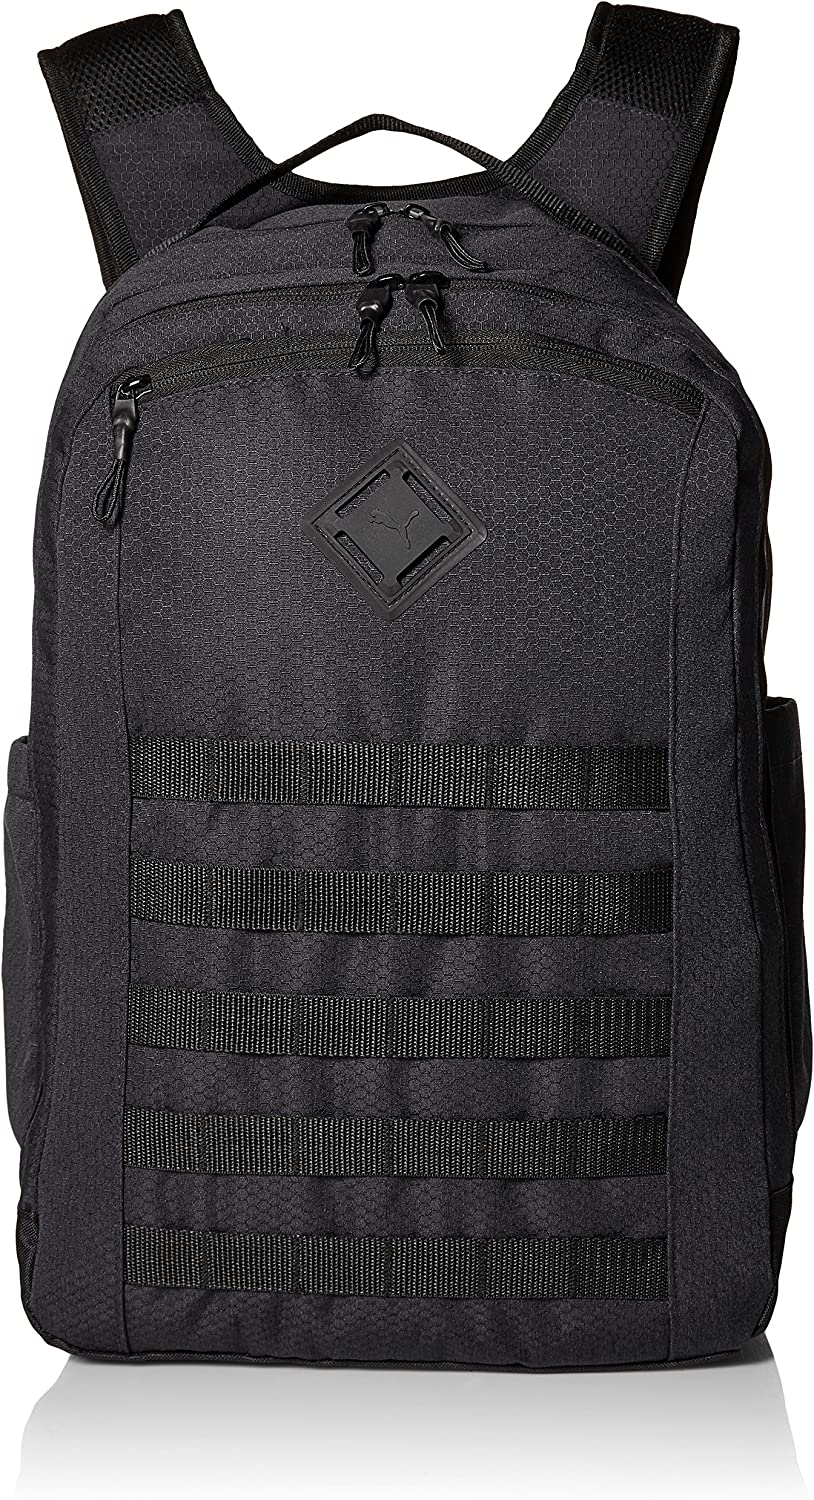 Puma Evercat Equation 3.0 Backpack Accessory